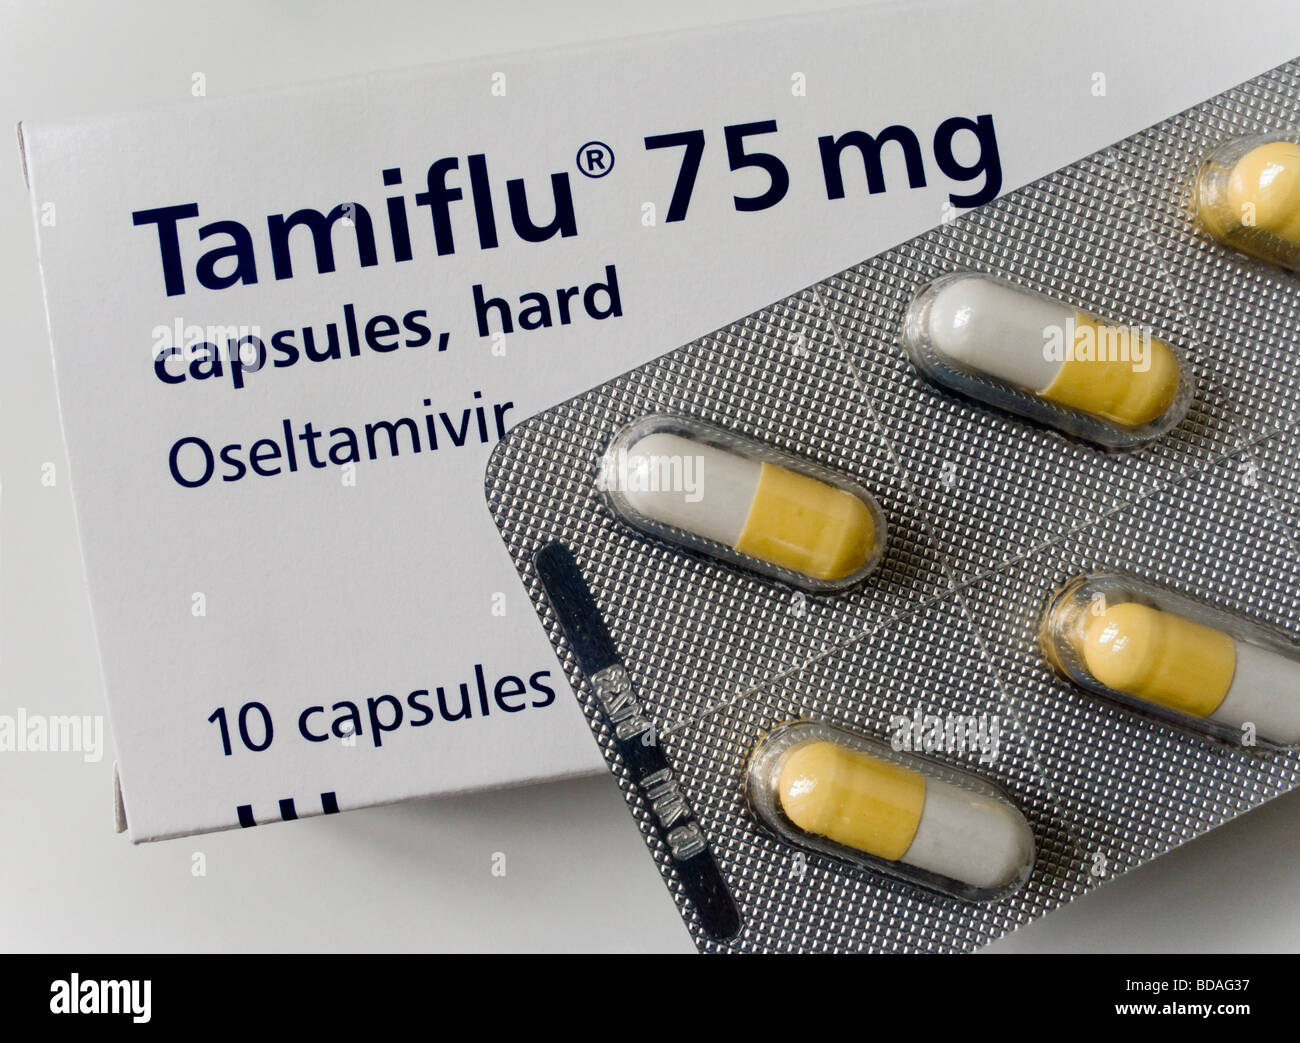 Oseltamivir  >> Tamiflu Oseltamivir Capsules 75mg In A Blister Pack And The Tamiflu